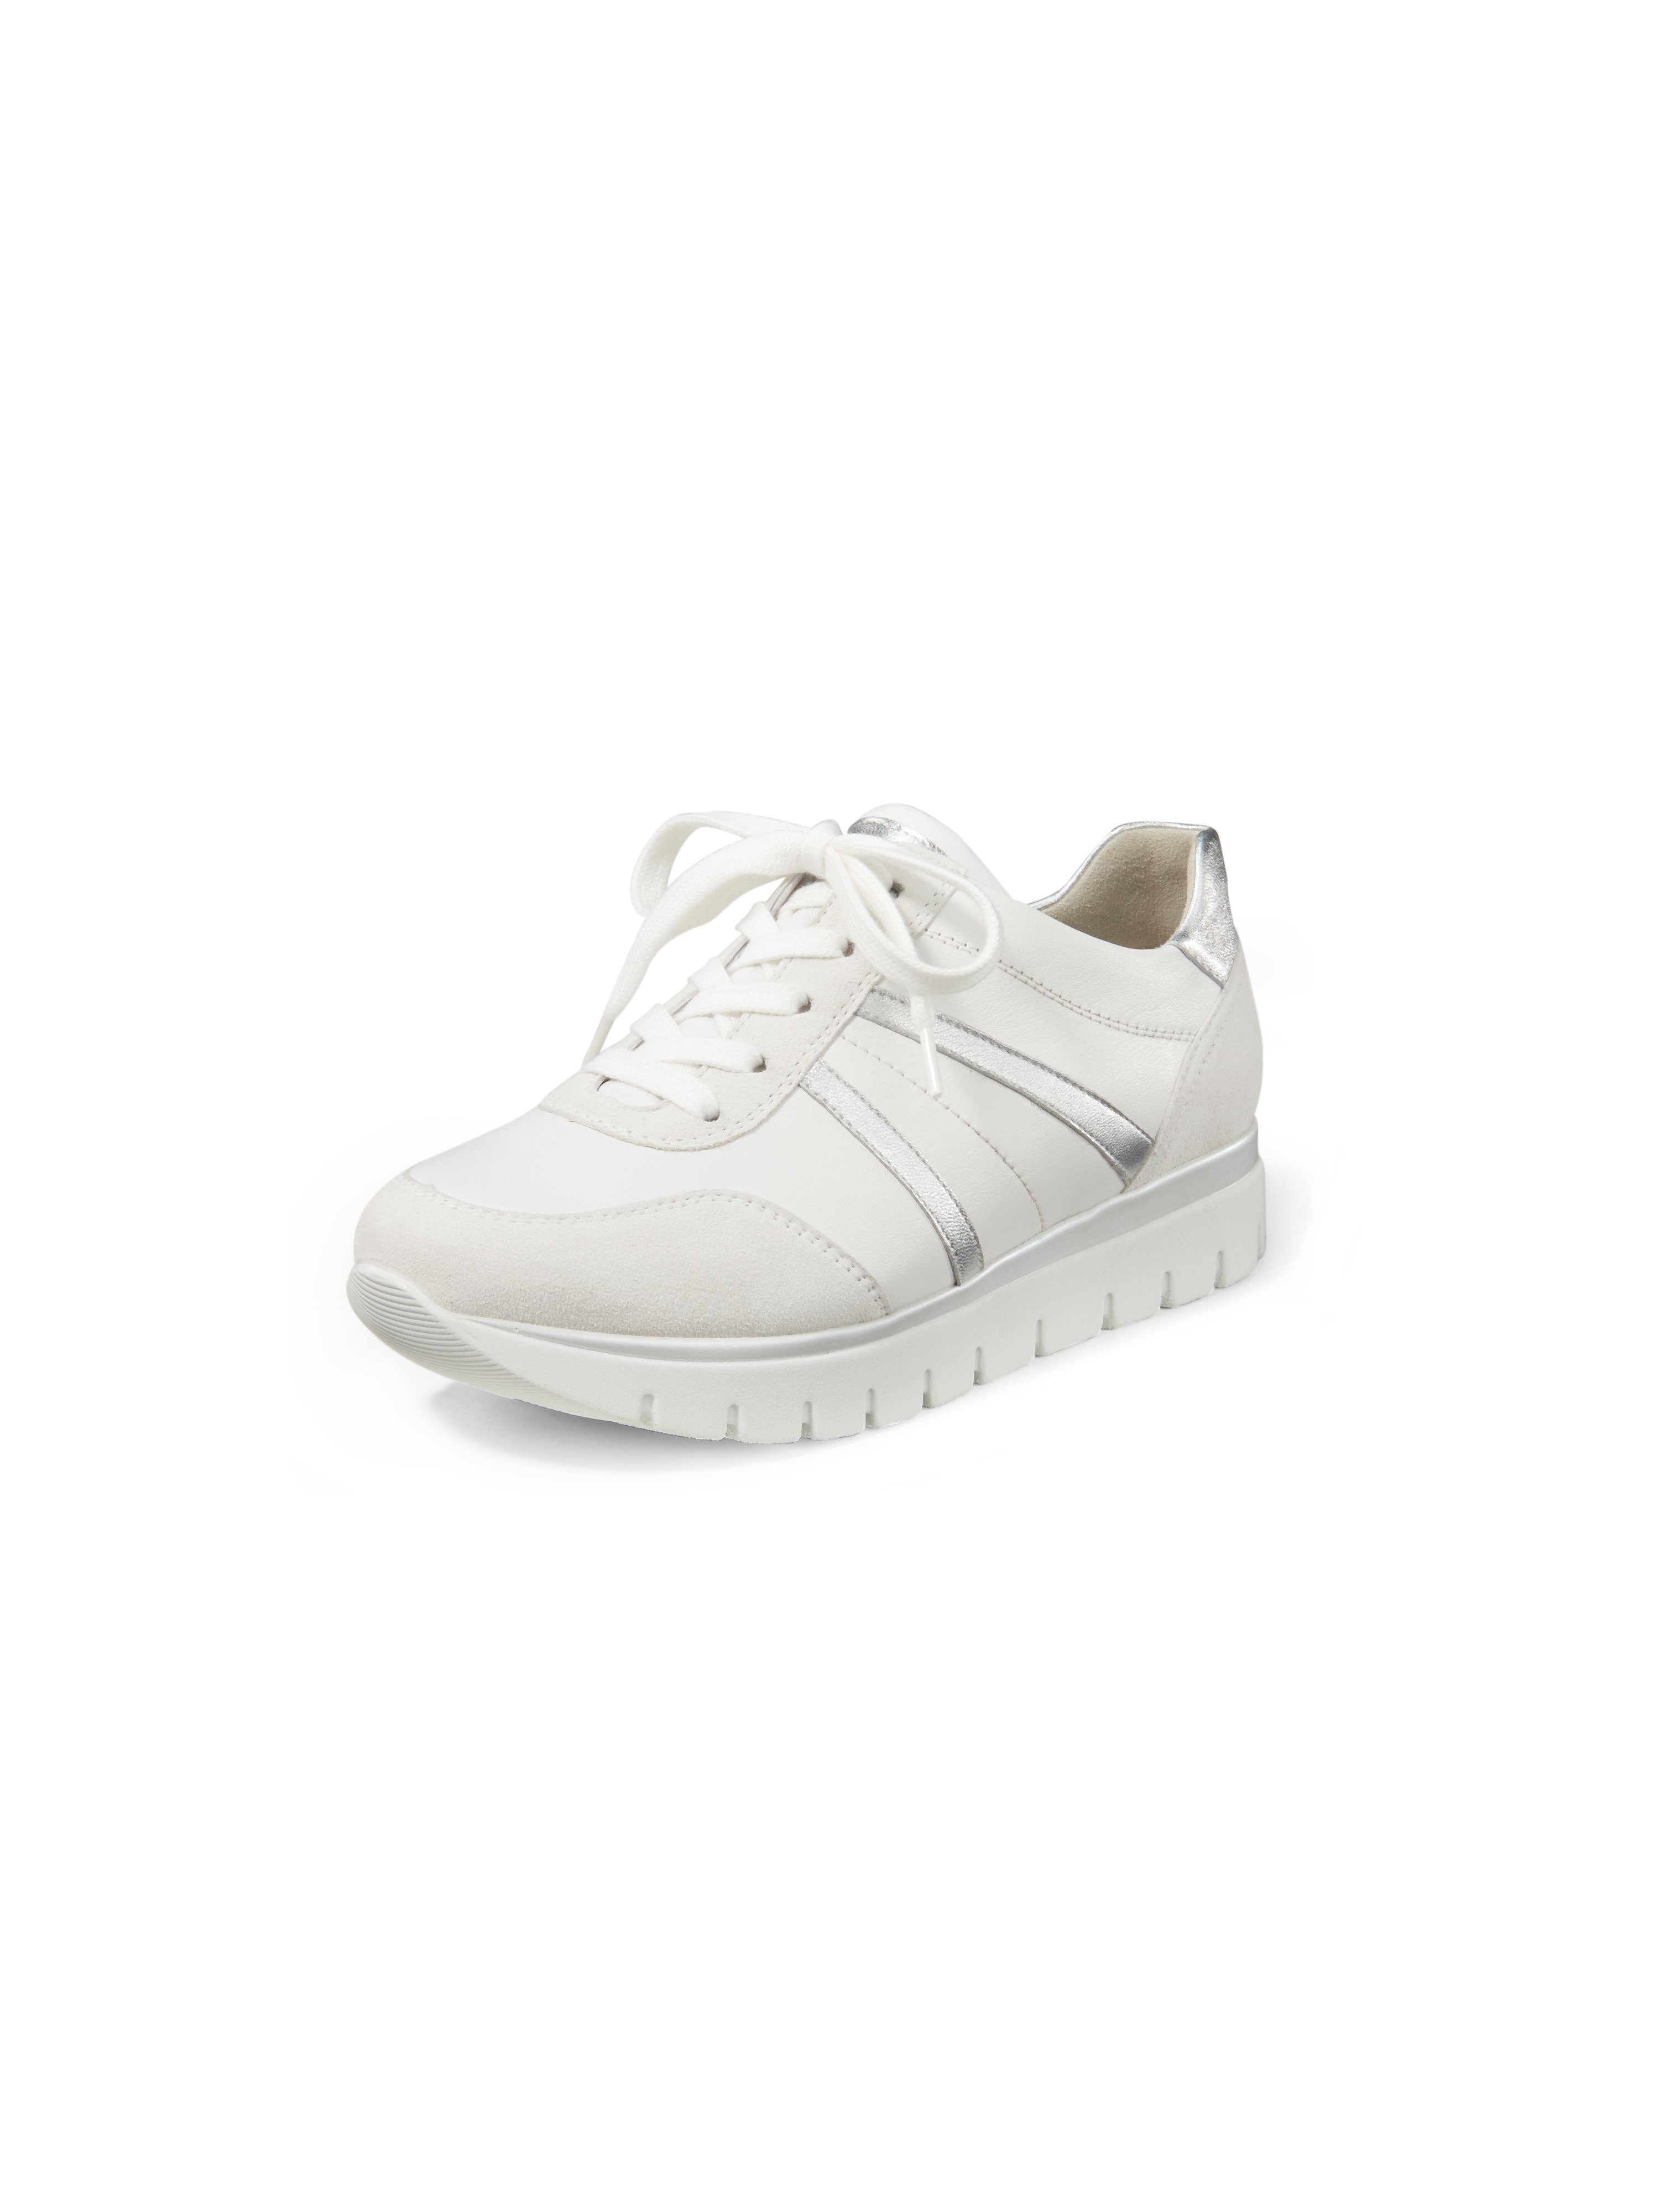 Calf nappa leather and kidskin suede sneakers Semler white